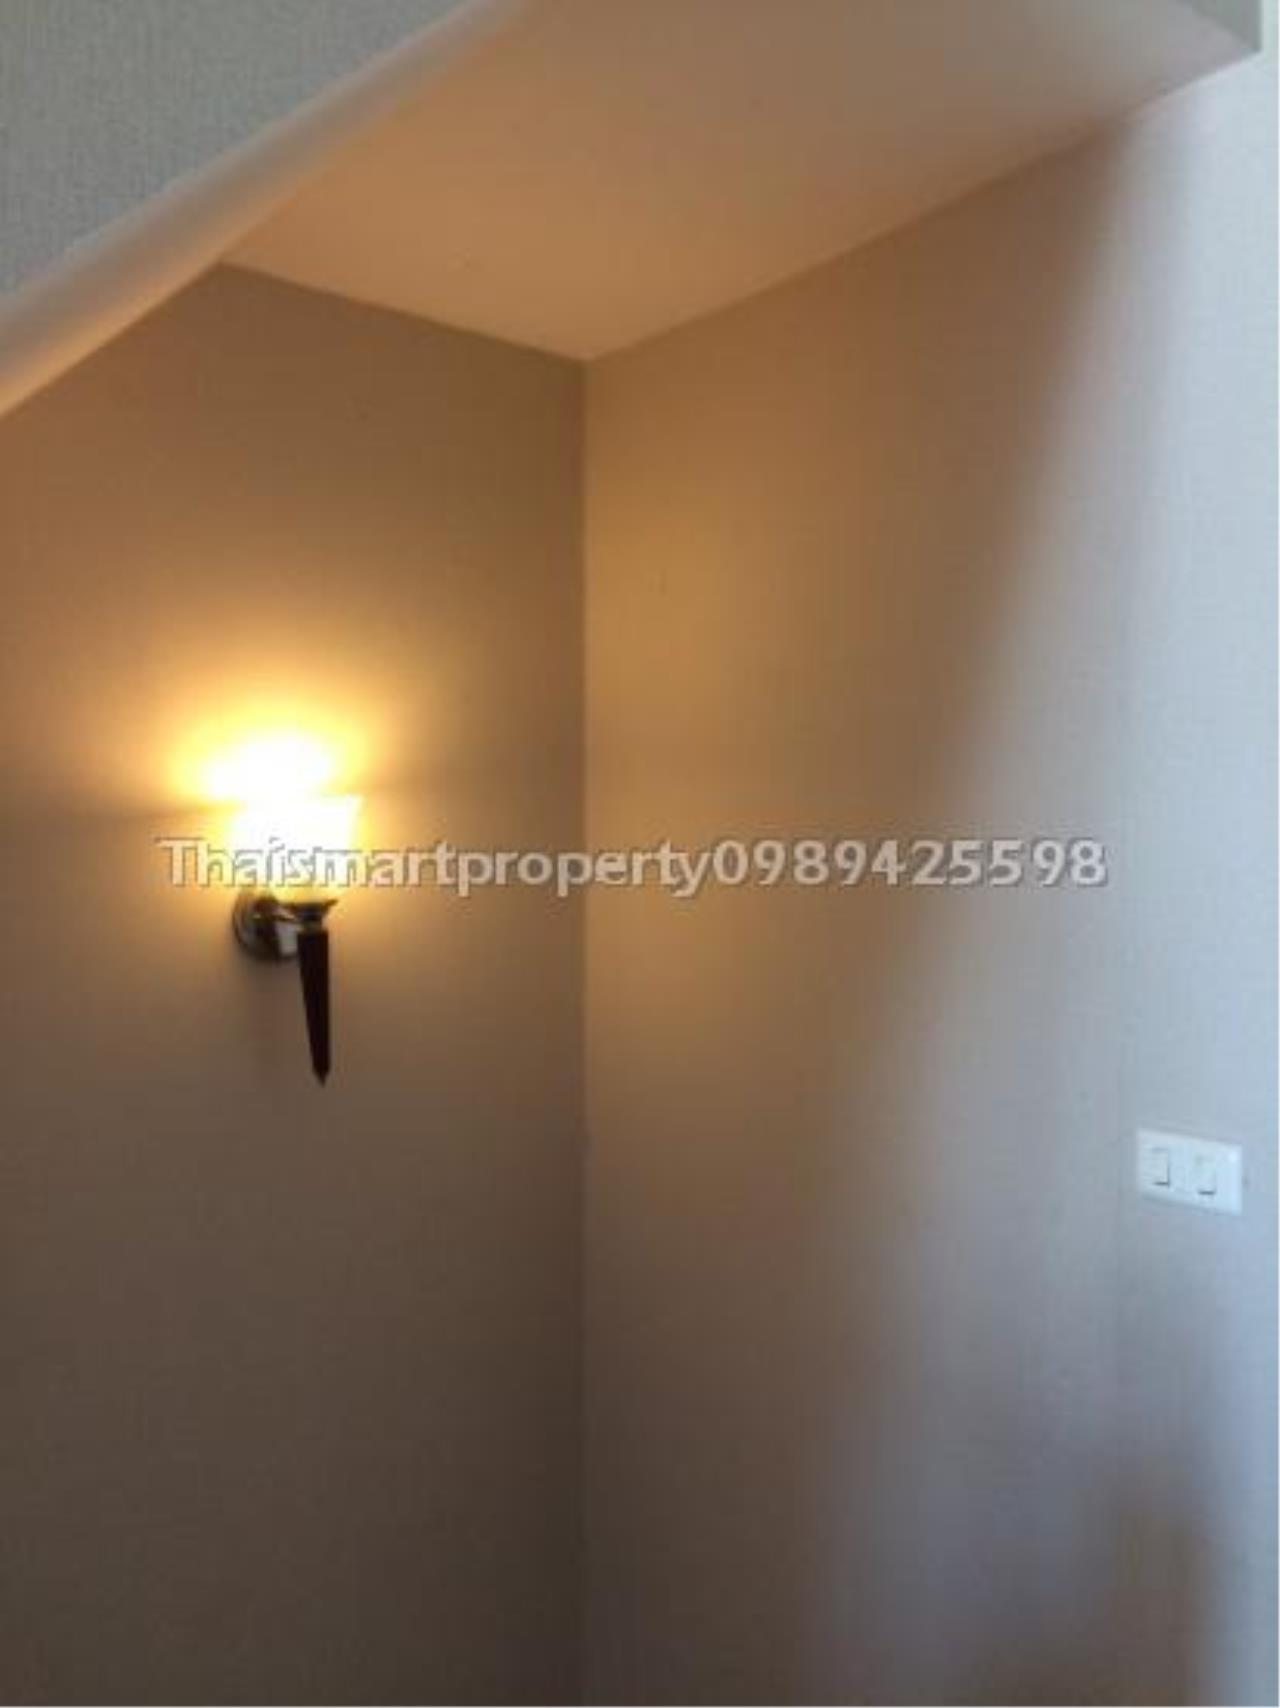 Thai Smart Property Agency's 3 storey townhome for sale, Casa City Sukontasawat 2 6